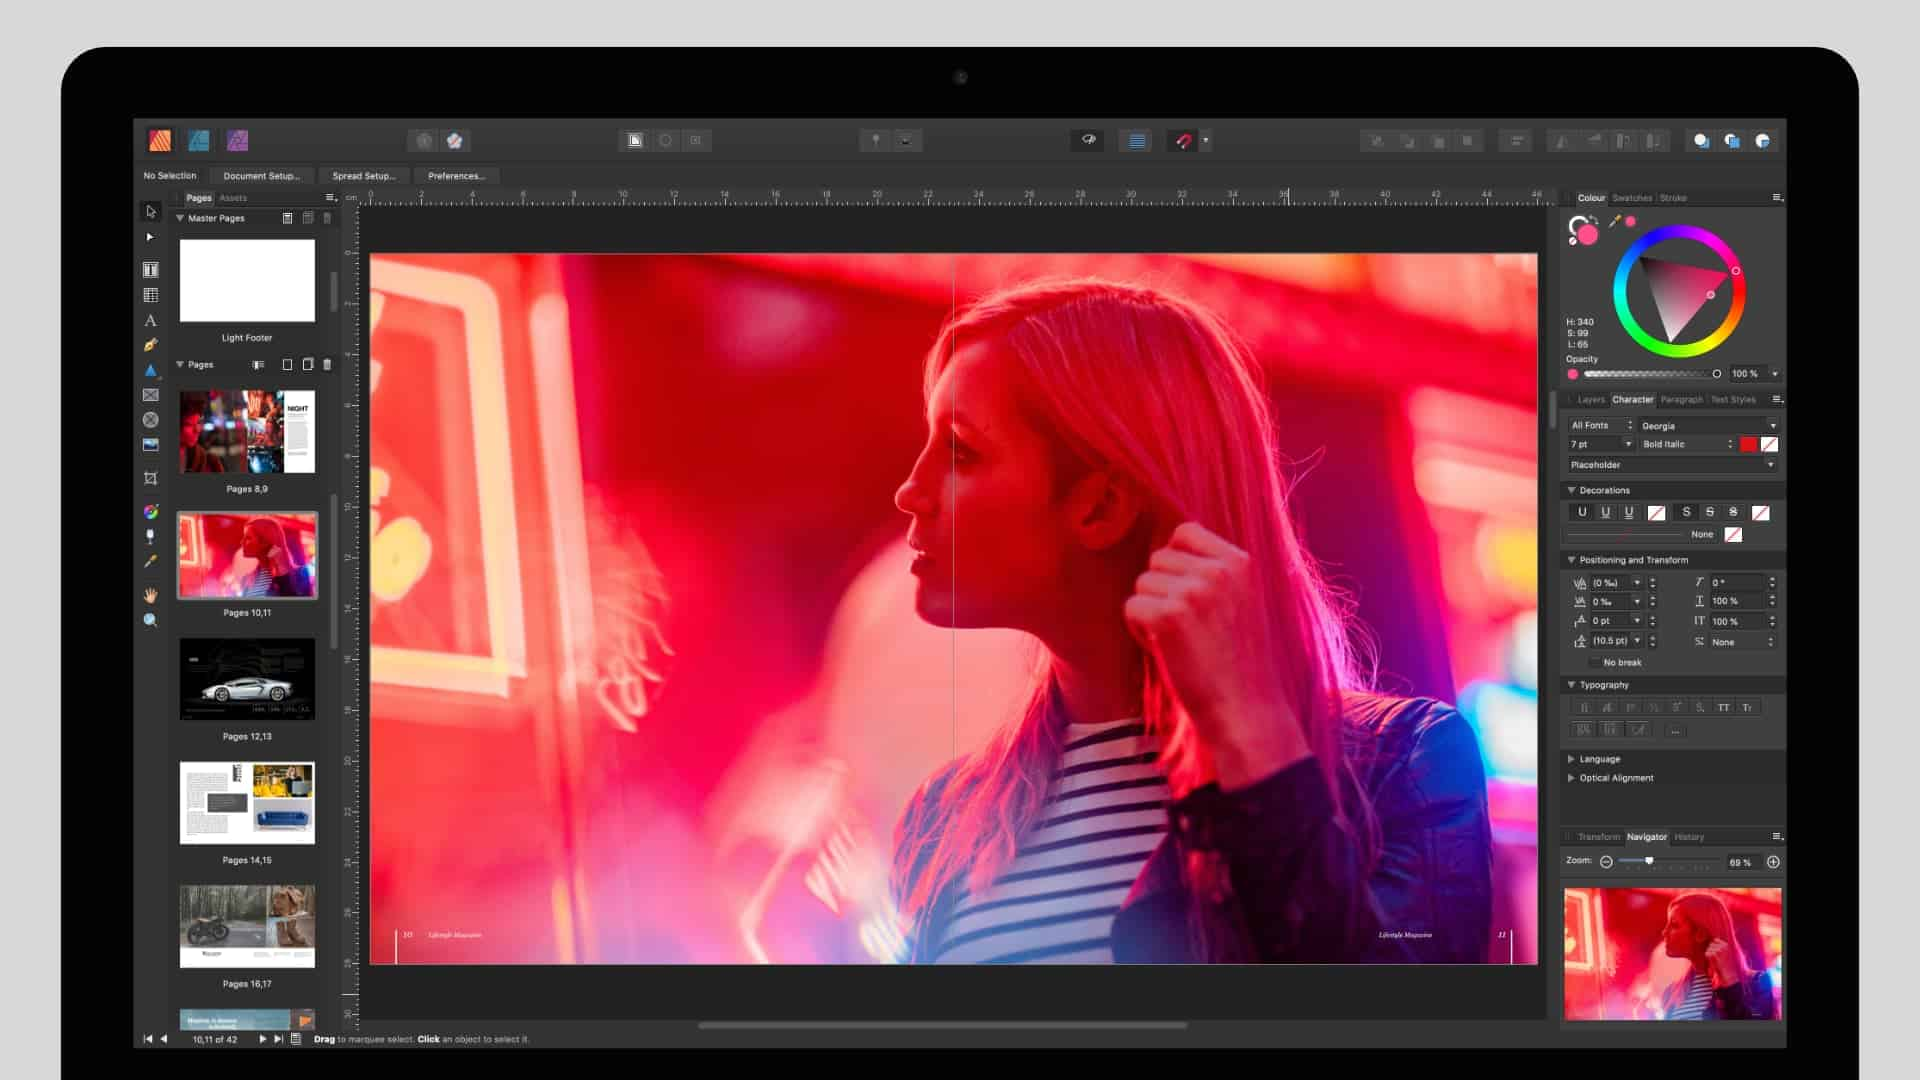 Affinity Photo: Photoshop Alternative